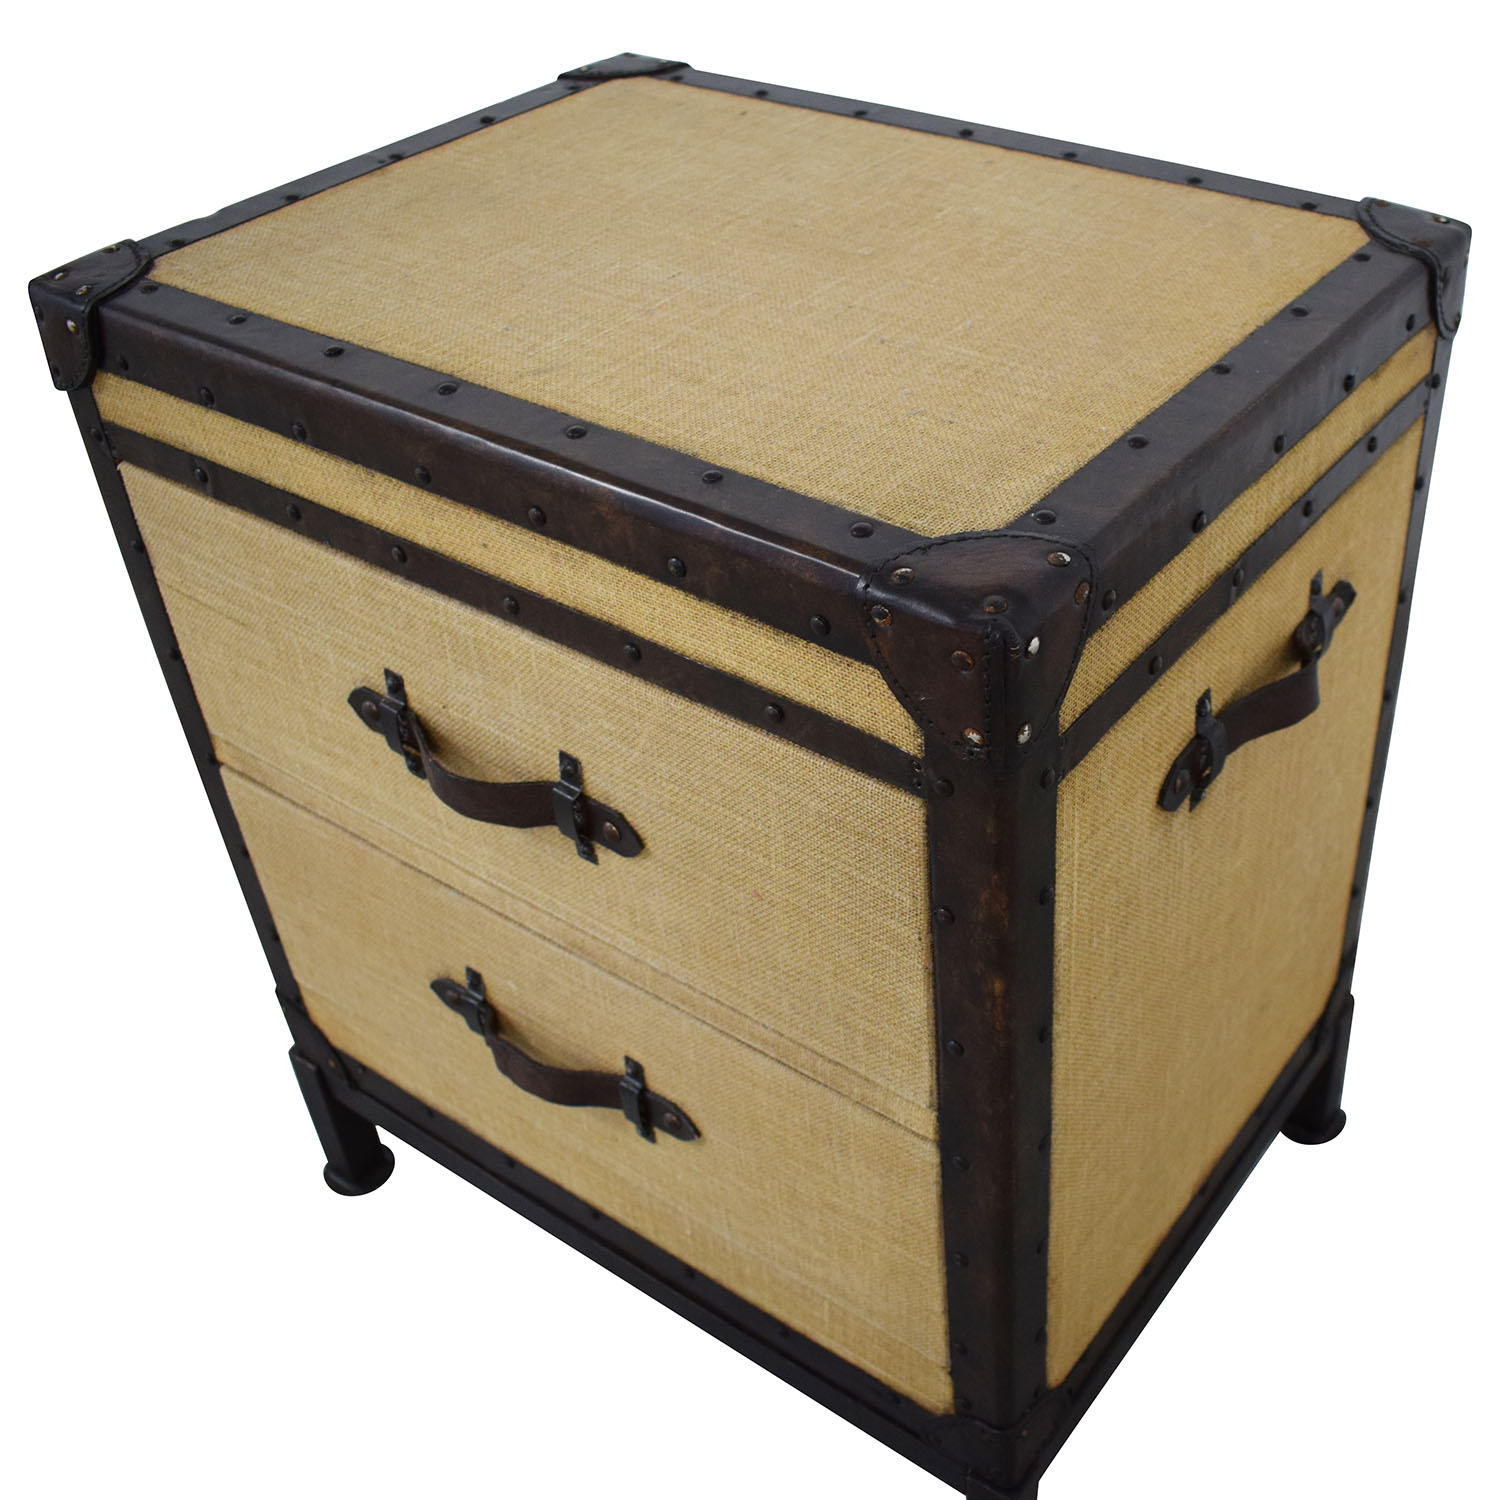 Pottery Barn Pottery Barn Redford Trunk Nightstand dimensions